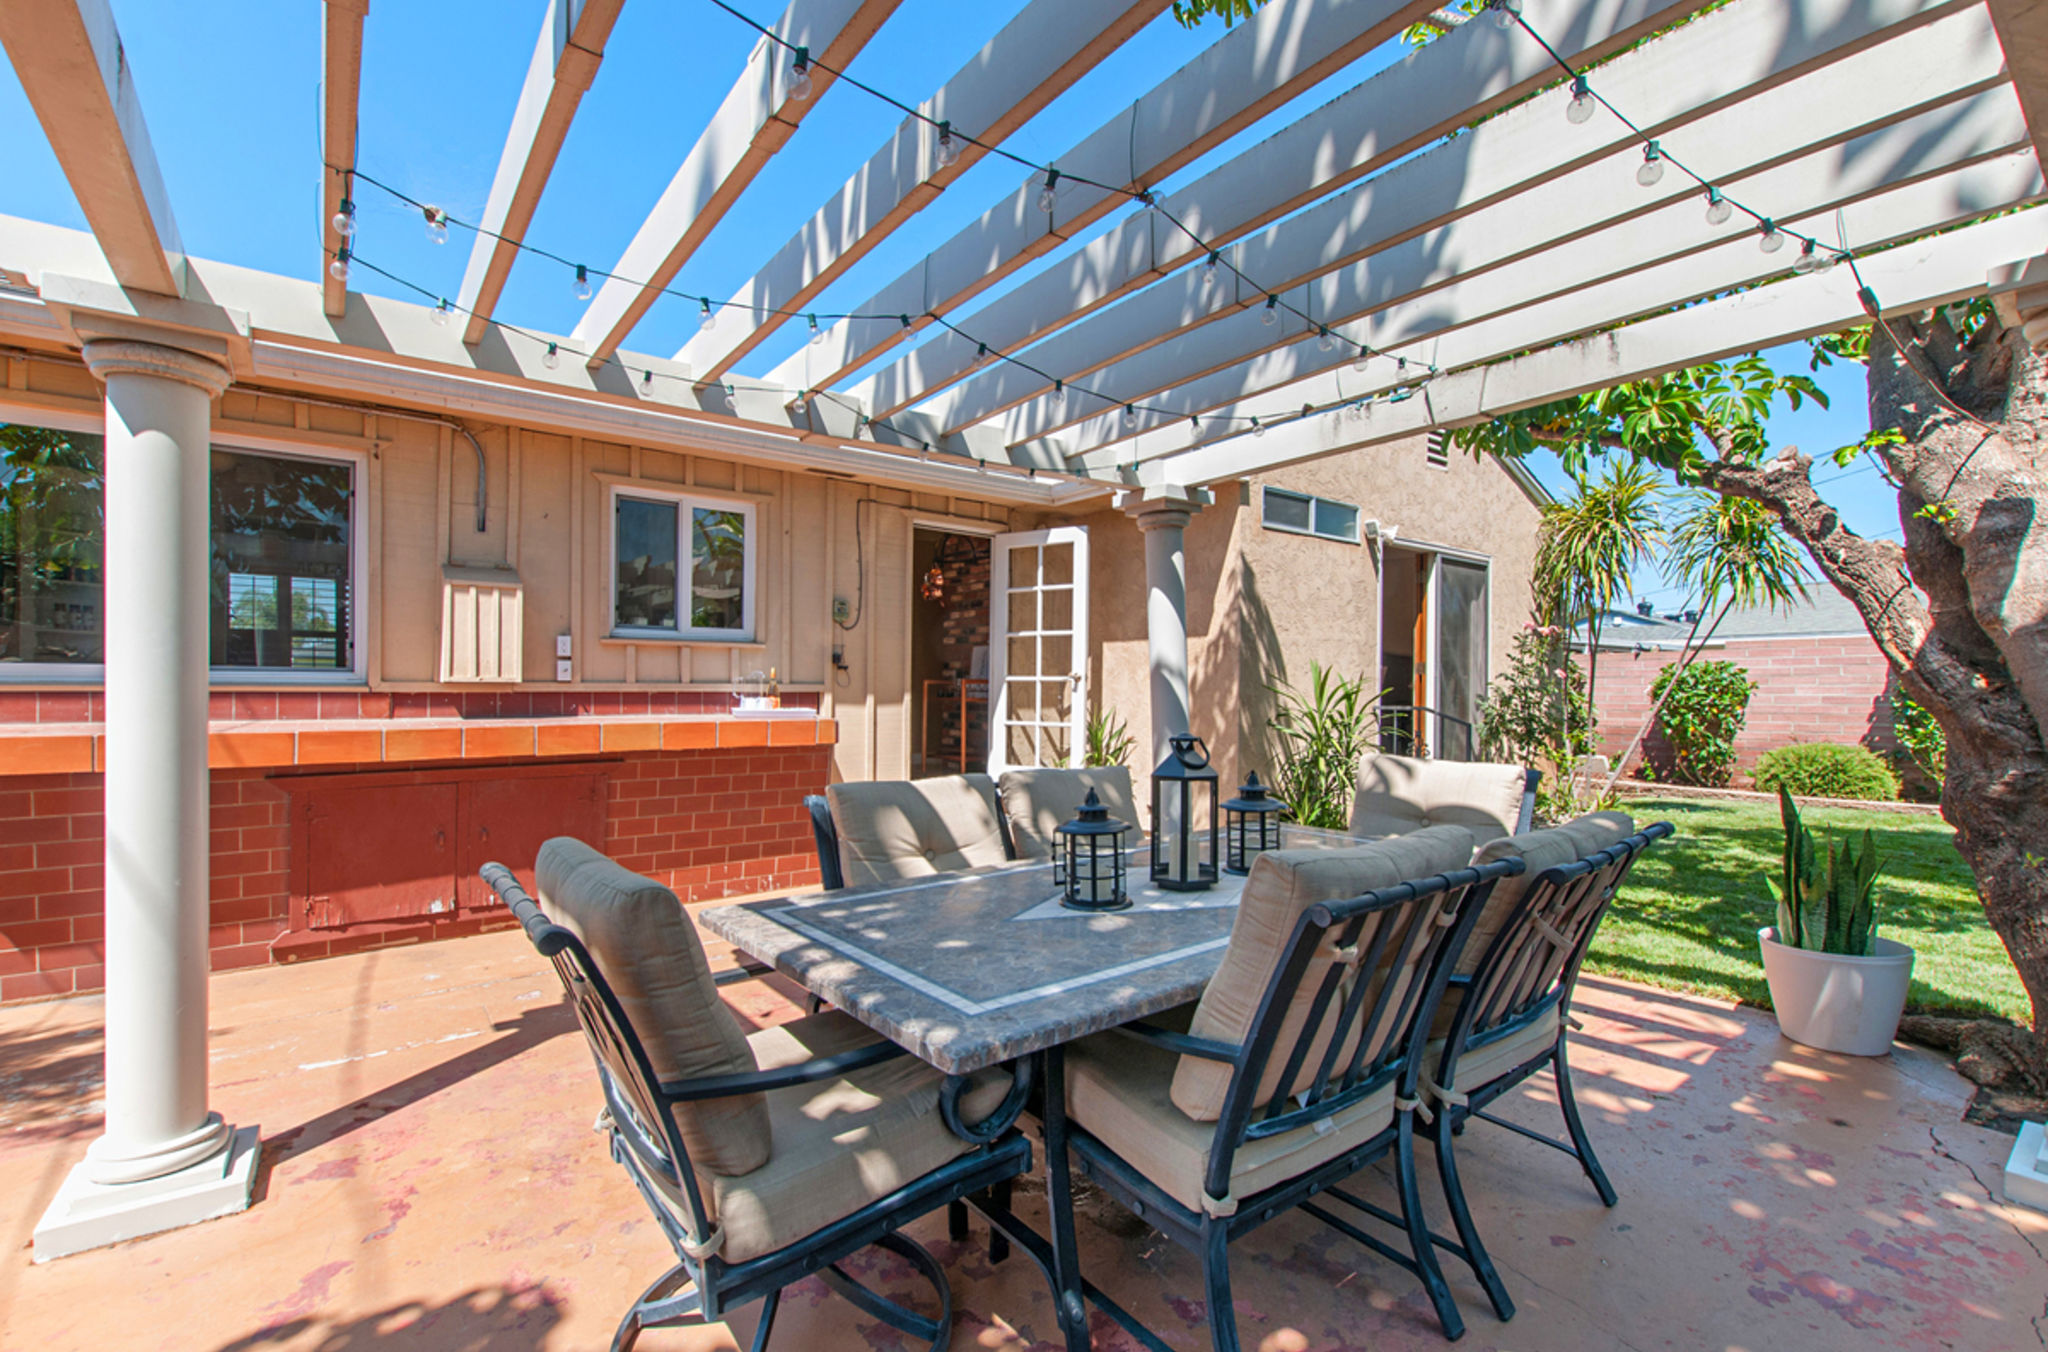 5526 elgin avenue san diego california by gloria shepard kathy